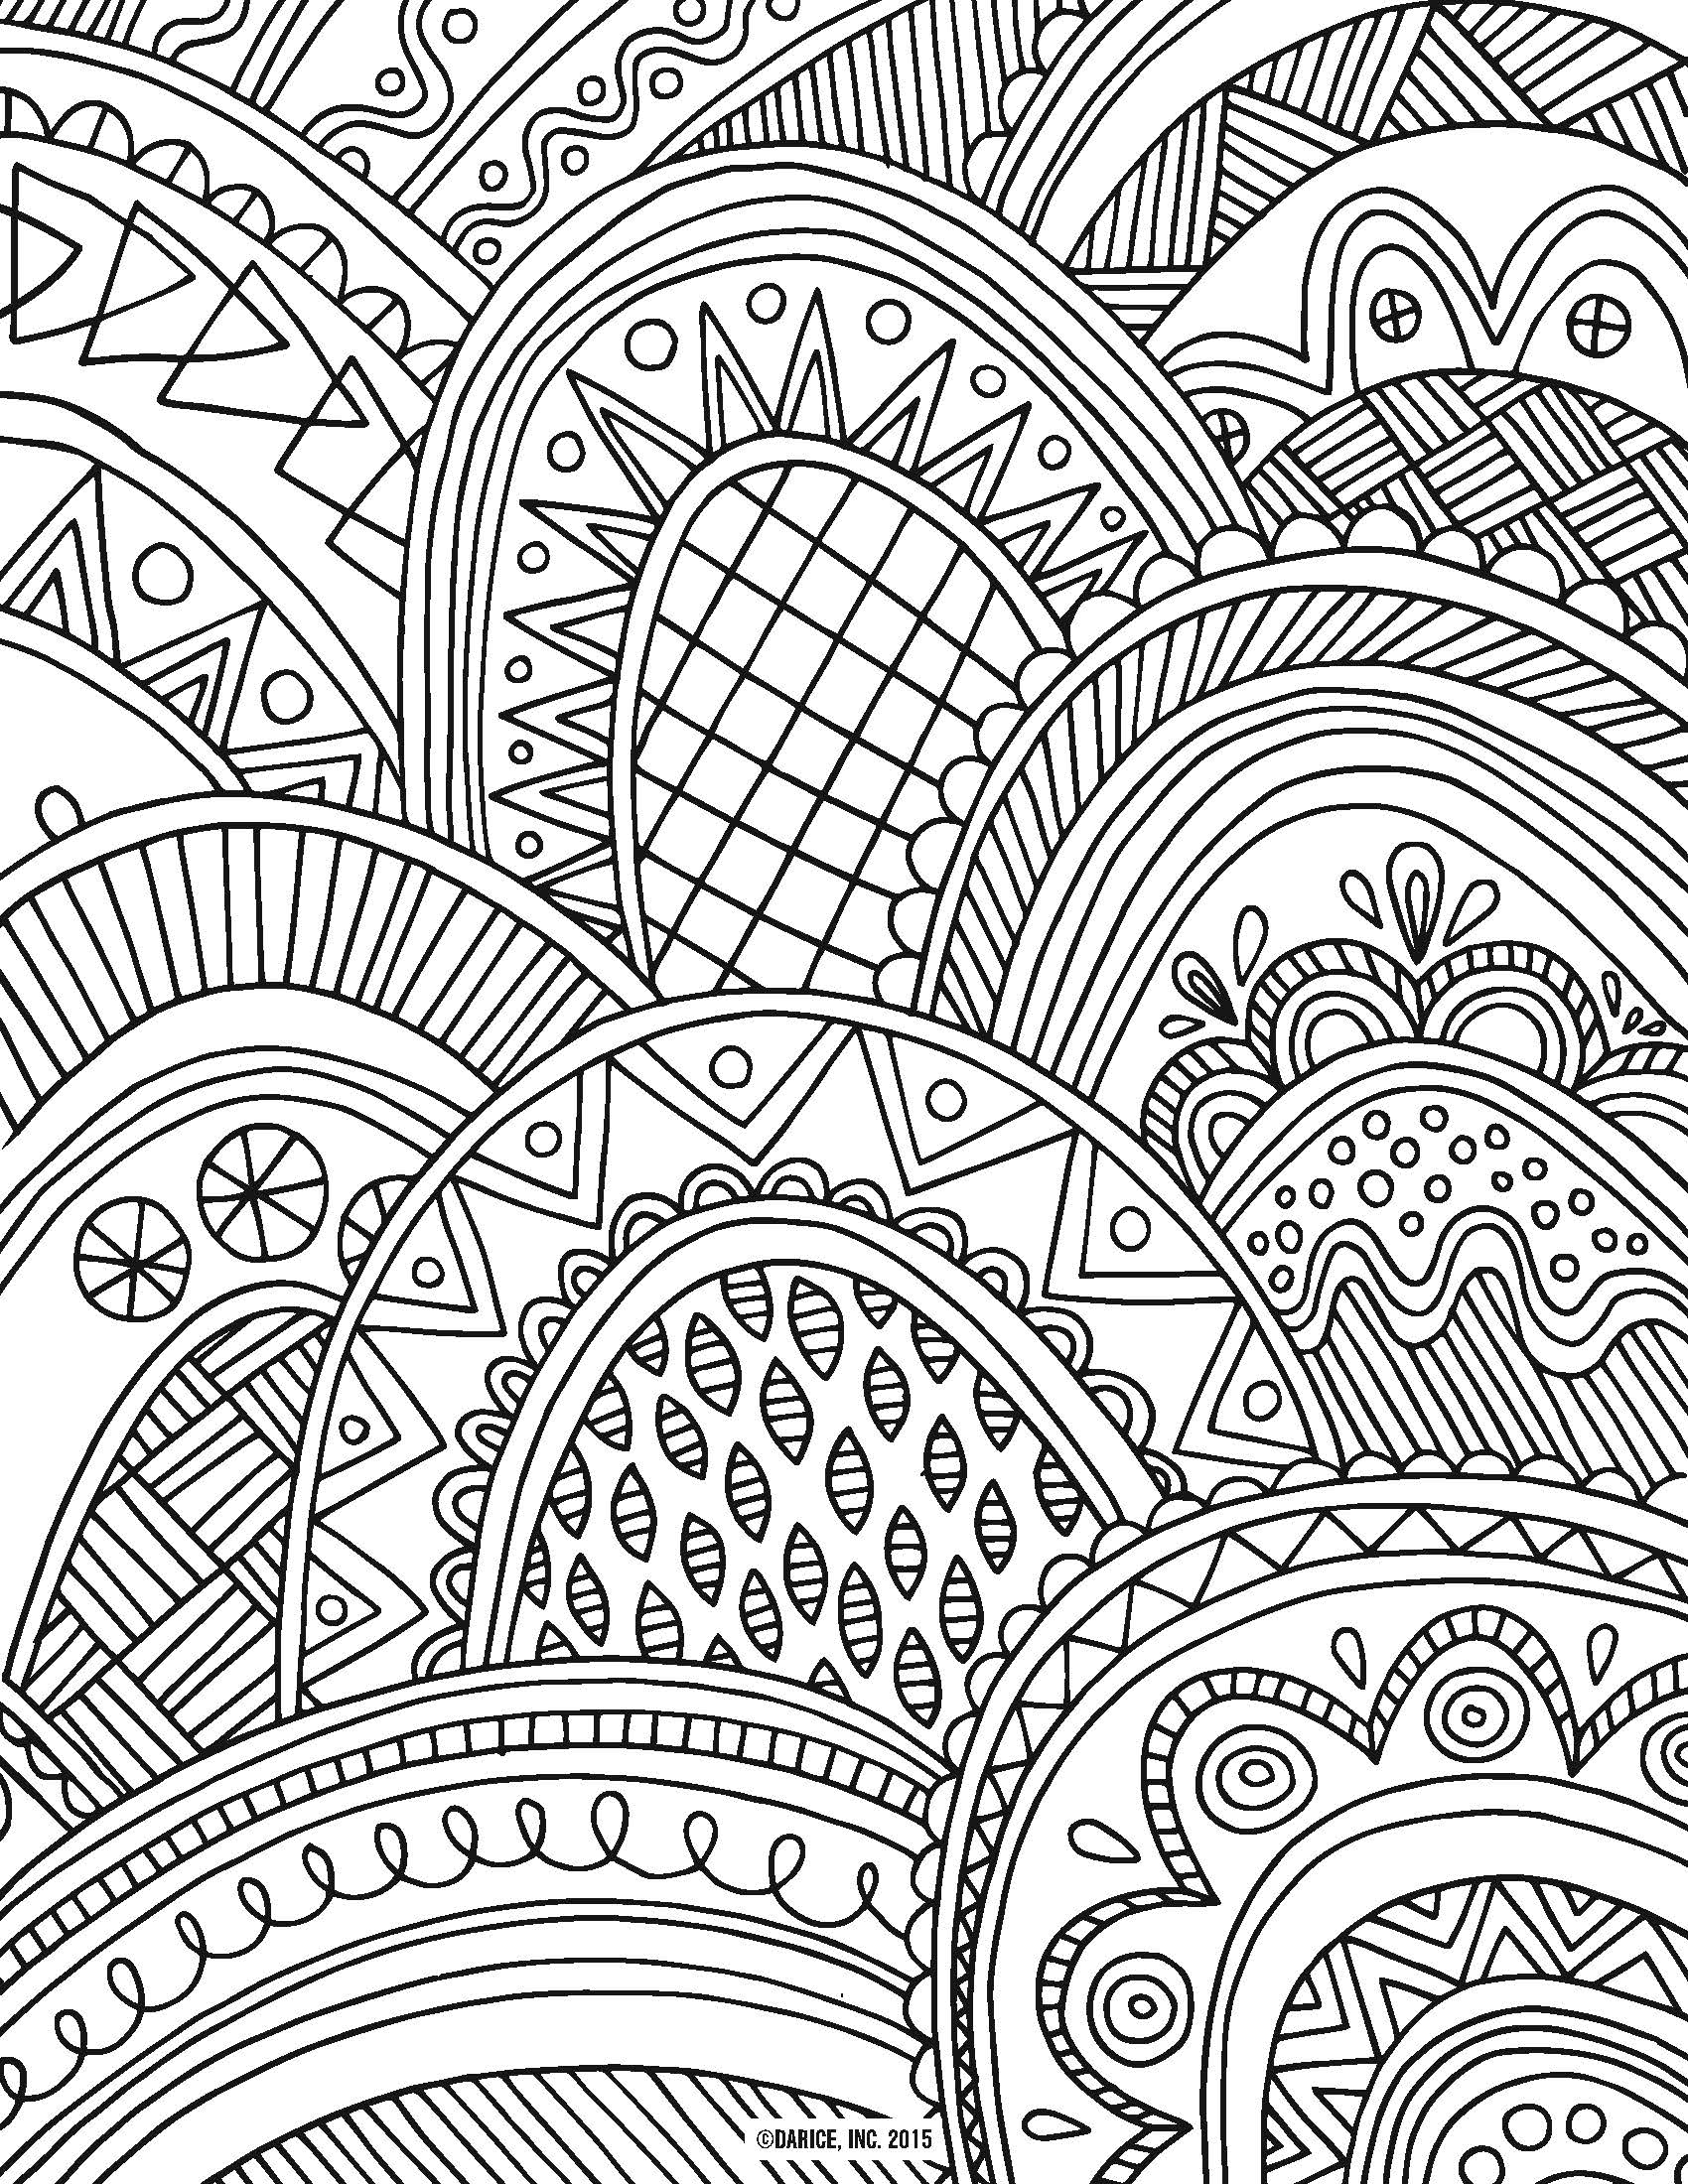 coloring pages online for adults 7 floral adult coloring pages the graphics fairy pages adults online for coloring